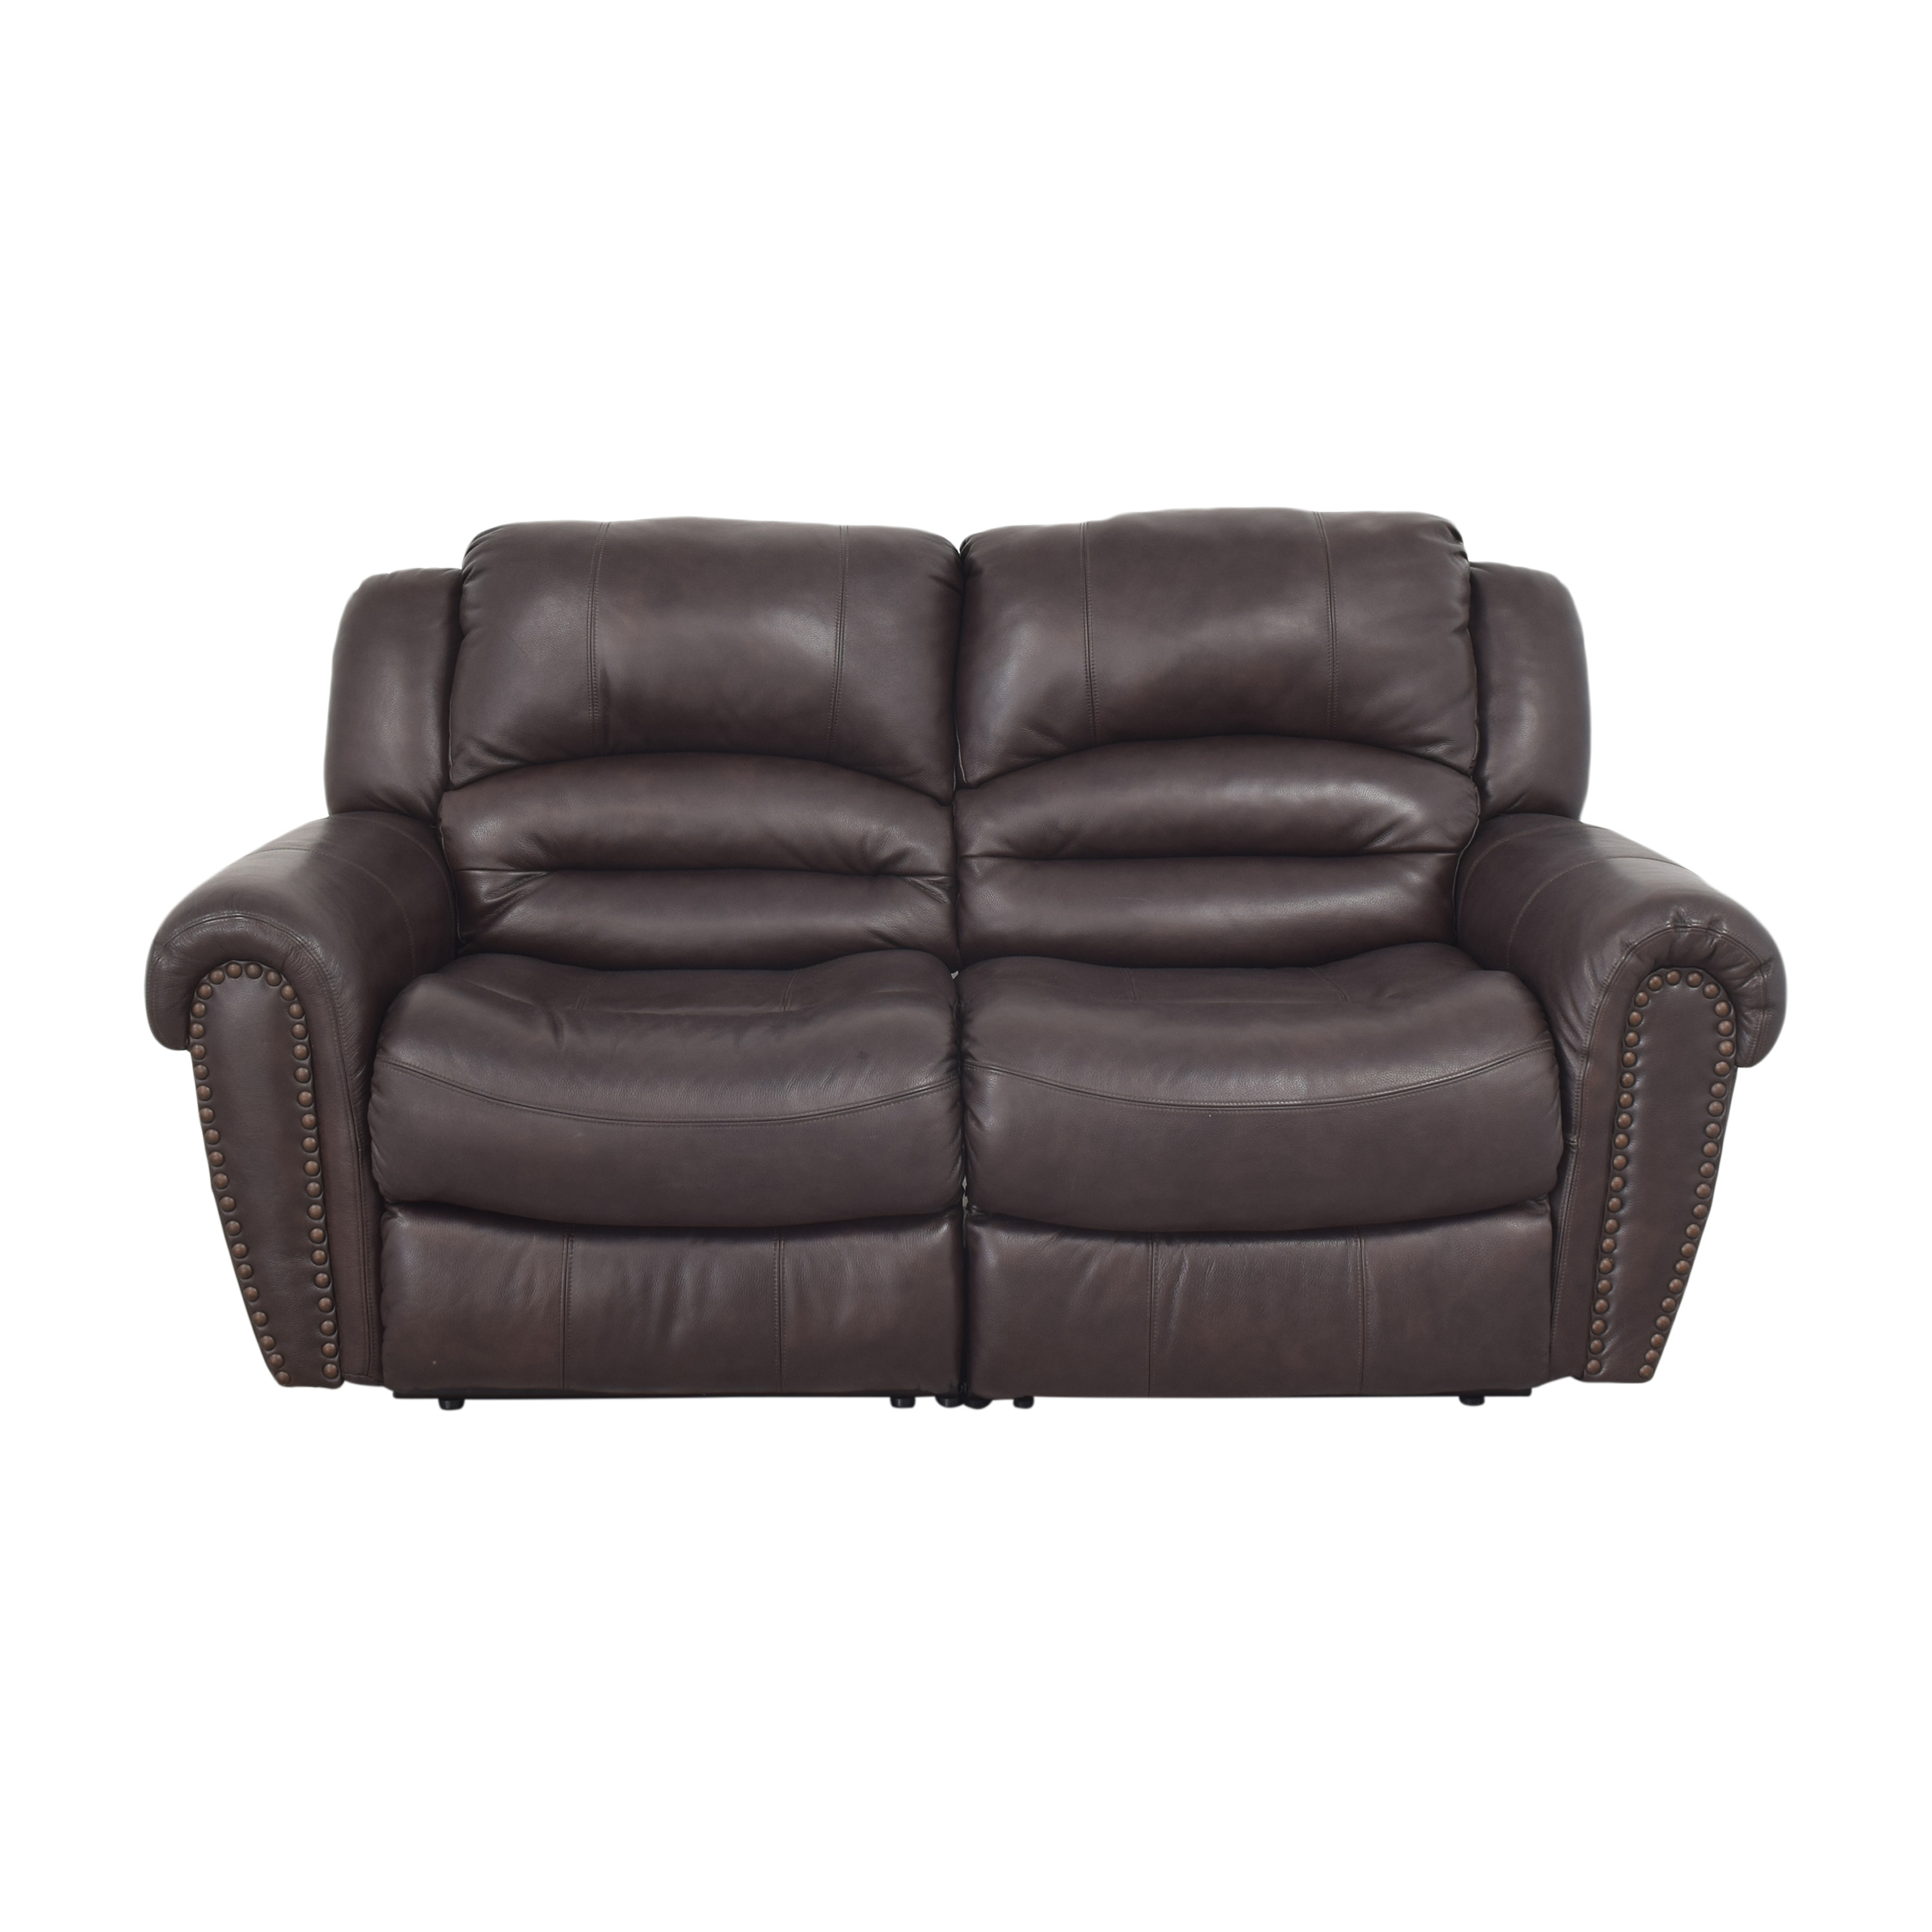 Raymour & Flanigan Raymour & Flanigan Two Cushion Recliner Sofa ct